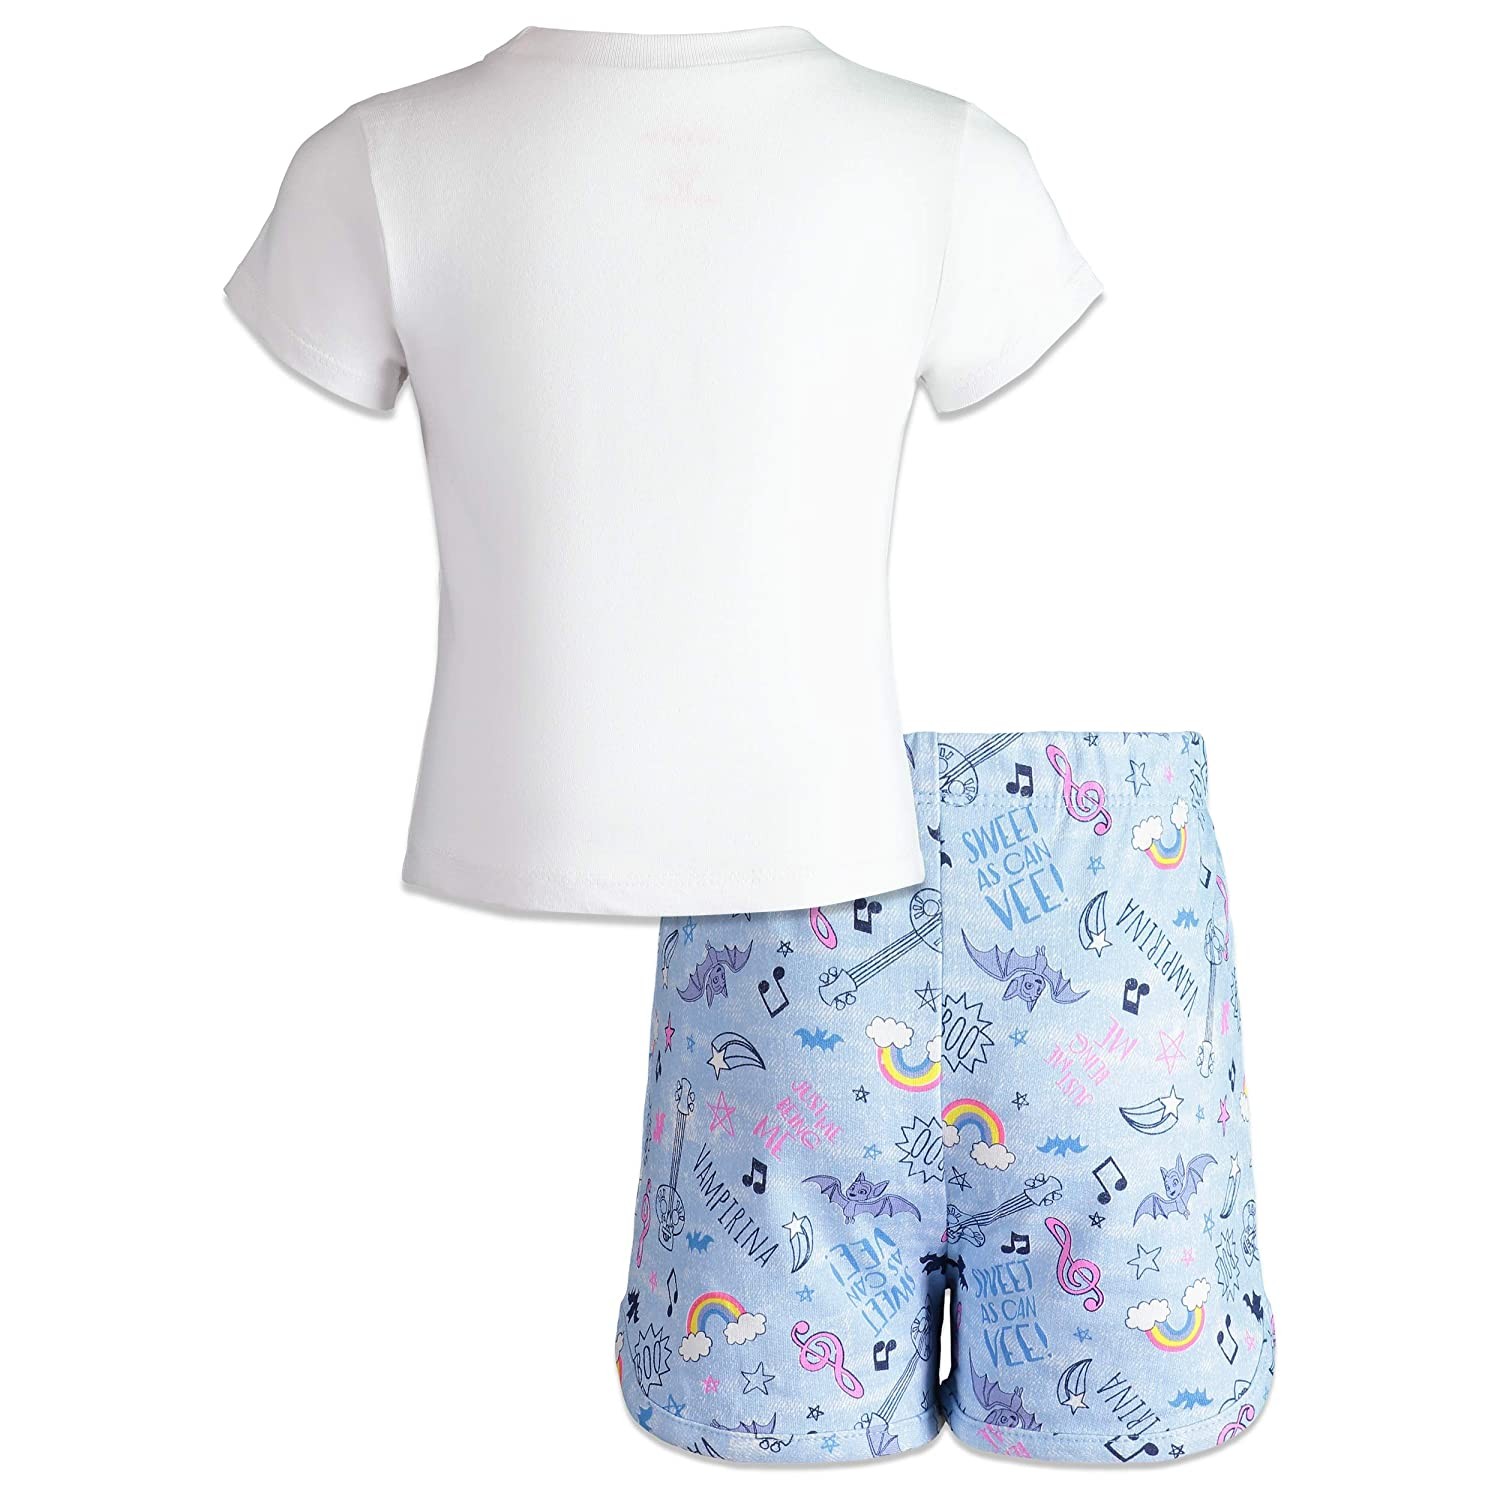 Disney Vampirina Toddler Girls T-Shirt /& French Terry Shorts Clothing Set